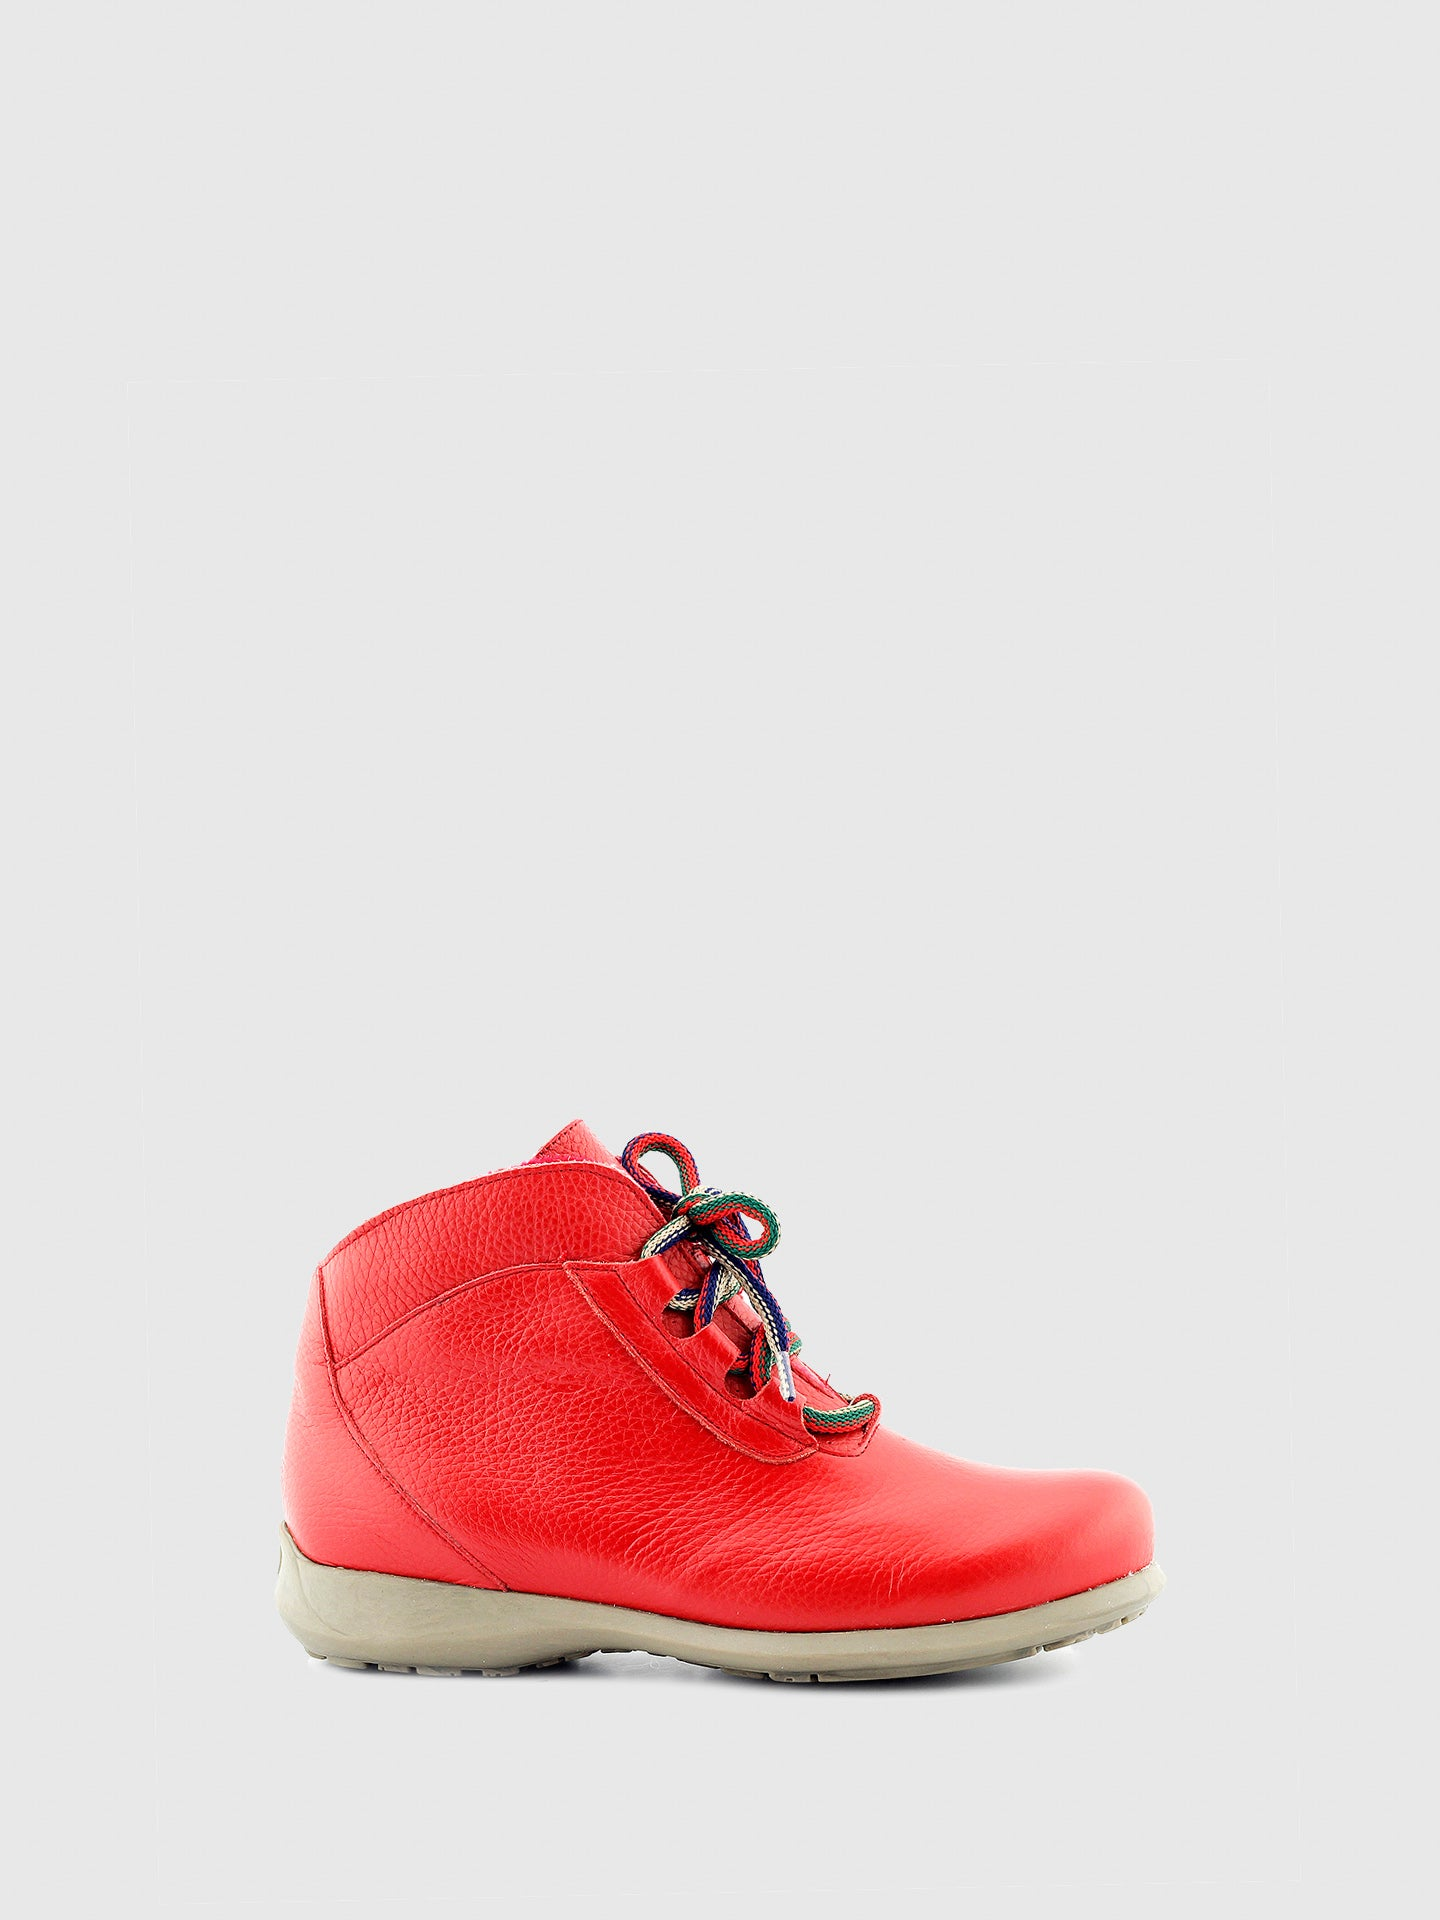 Jose Saenz Red Lace-up Ankle Boots